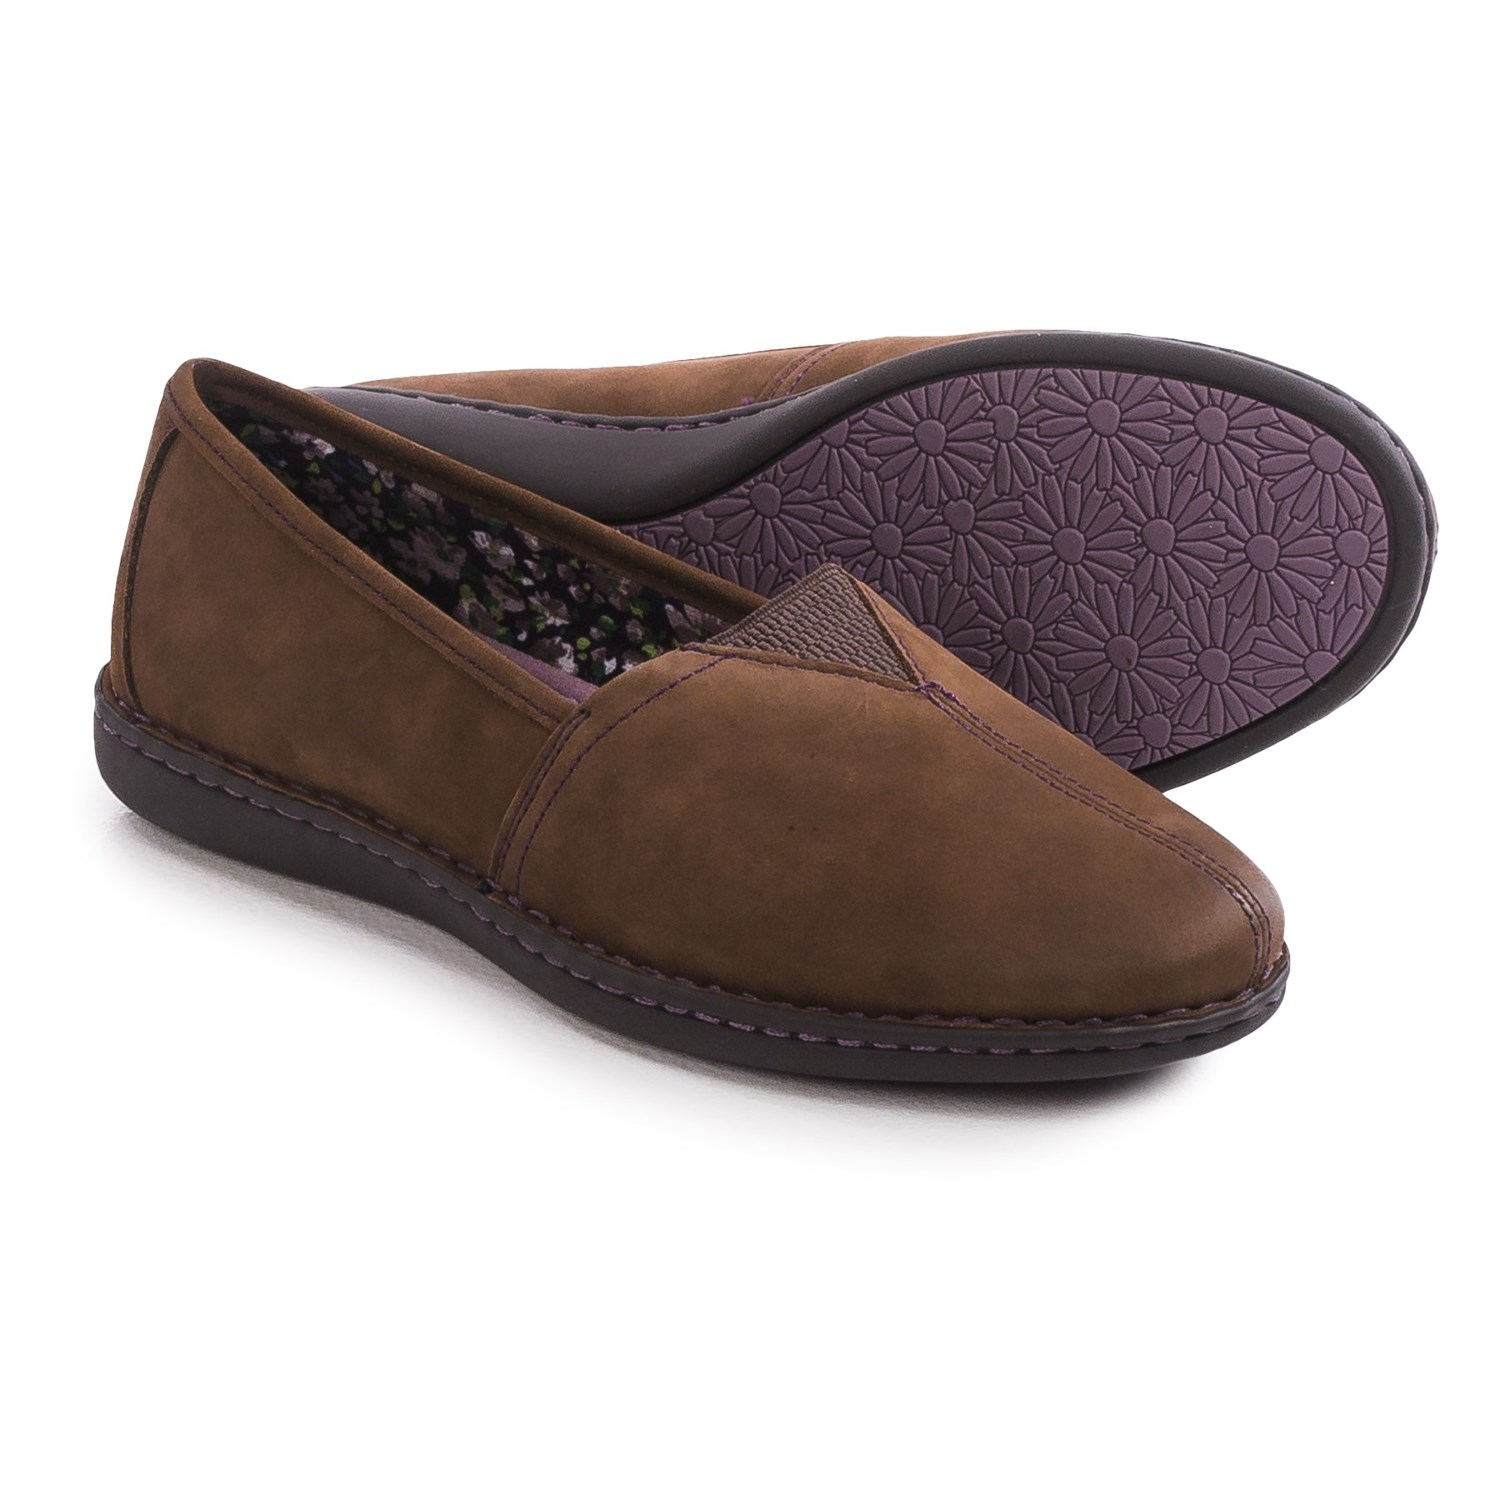 eastland leather shoes for save 46